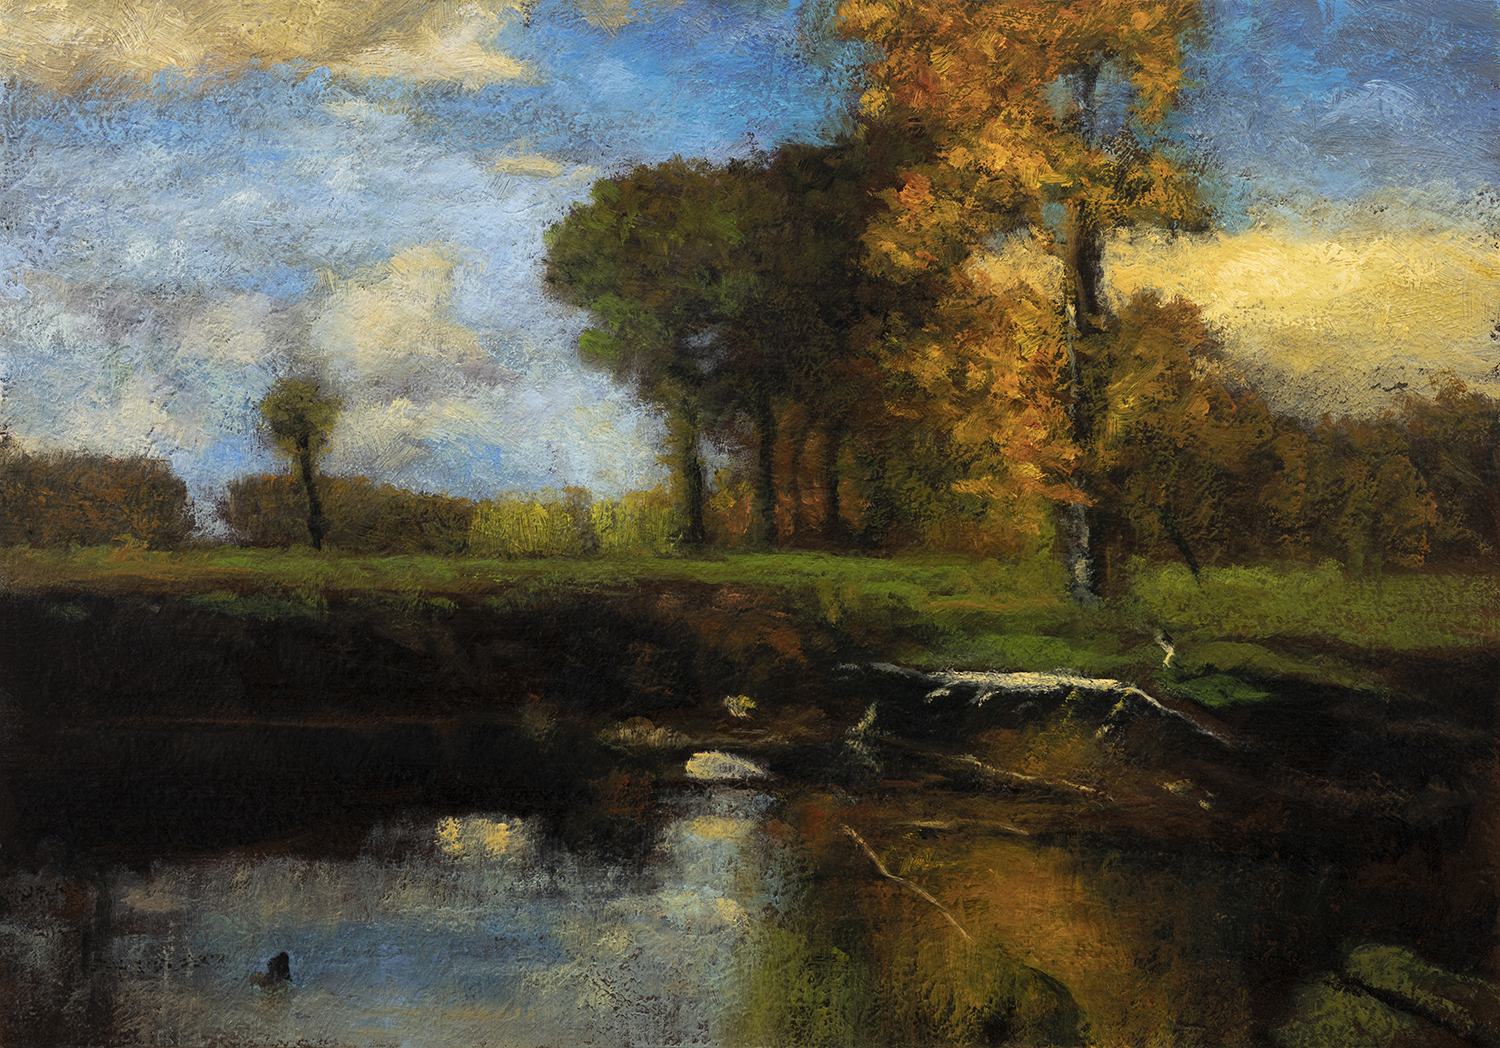 Study after: George Inness Spirit of Autumn by M Francis McCarthy - 7x10 Oil on Wood Panel